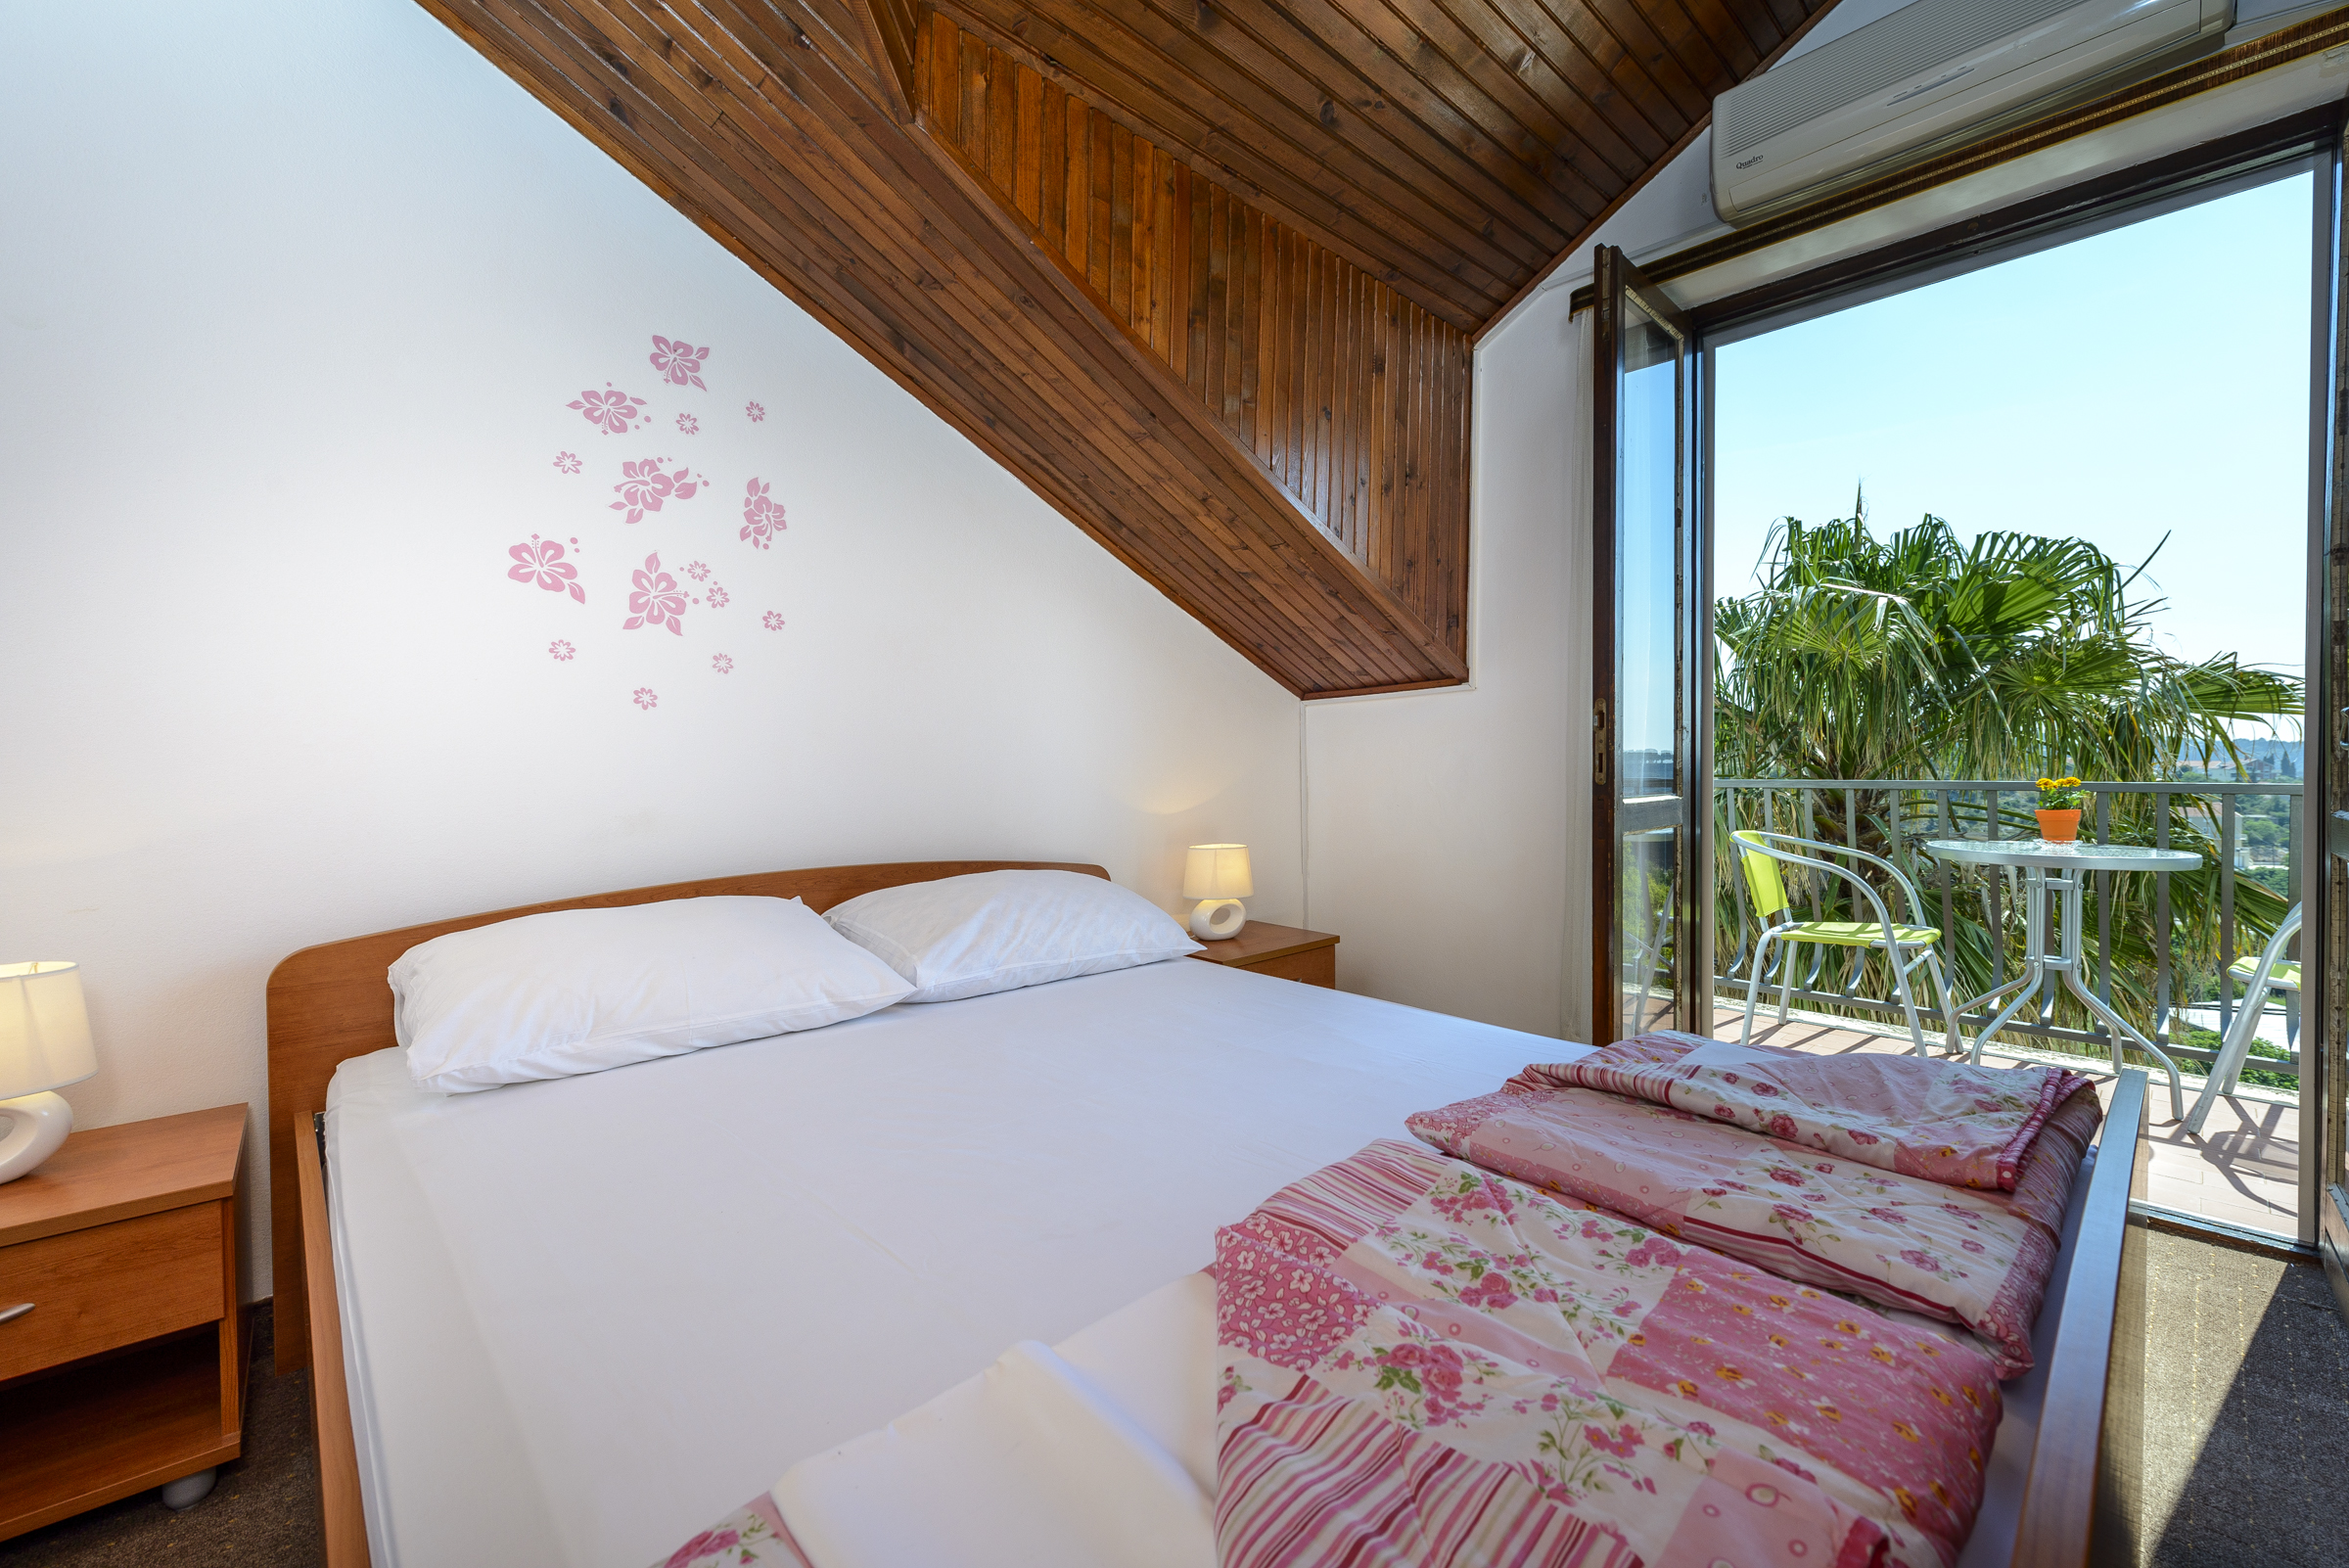 Triple room with balcony and pool access